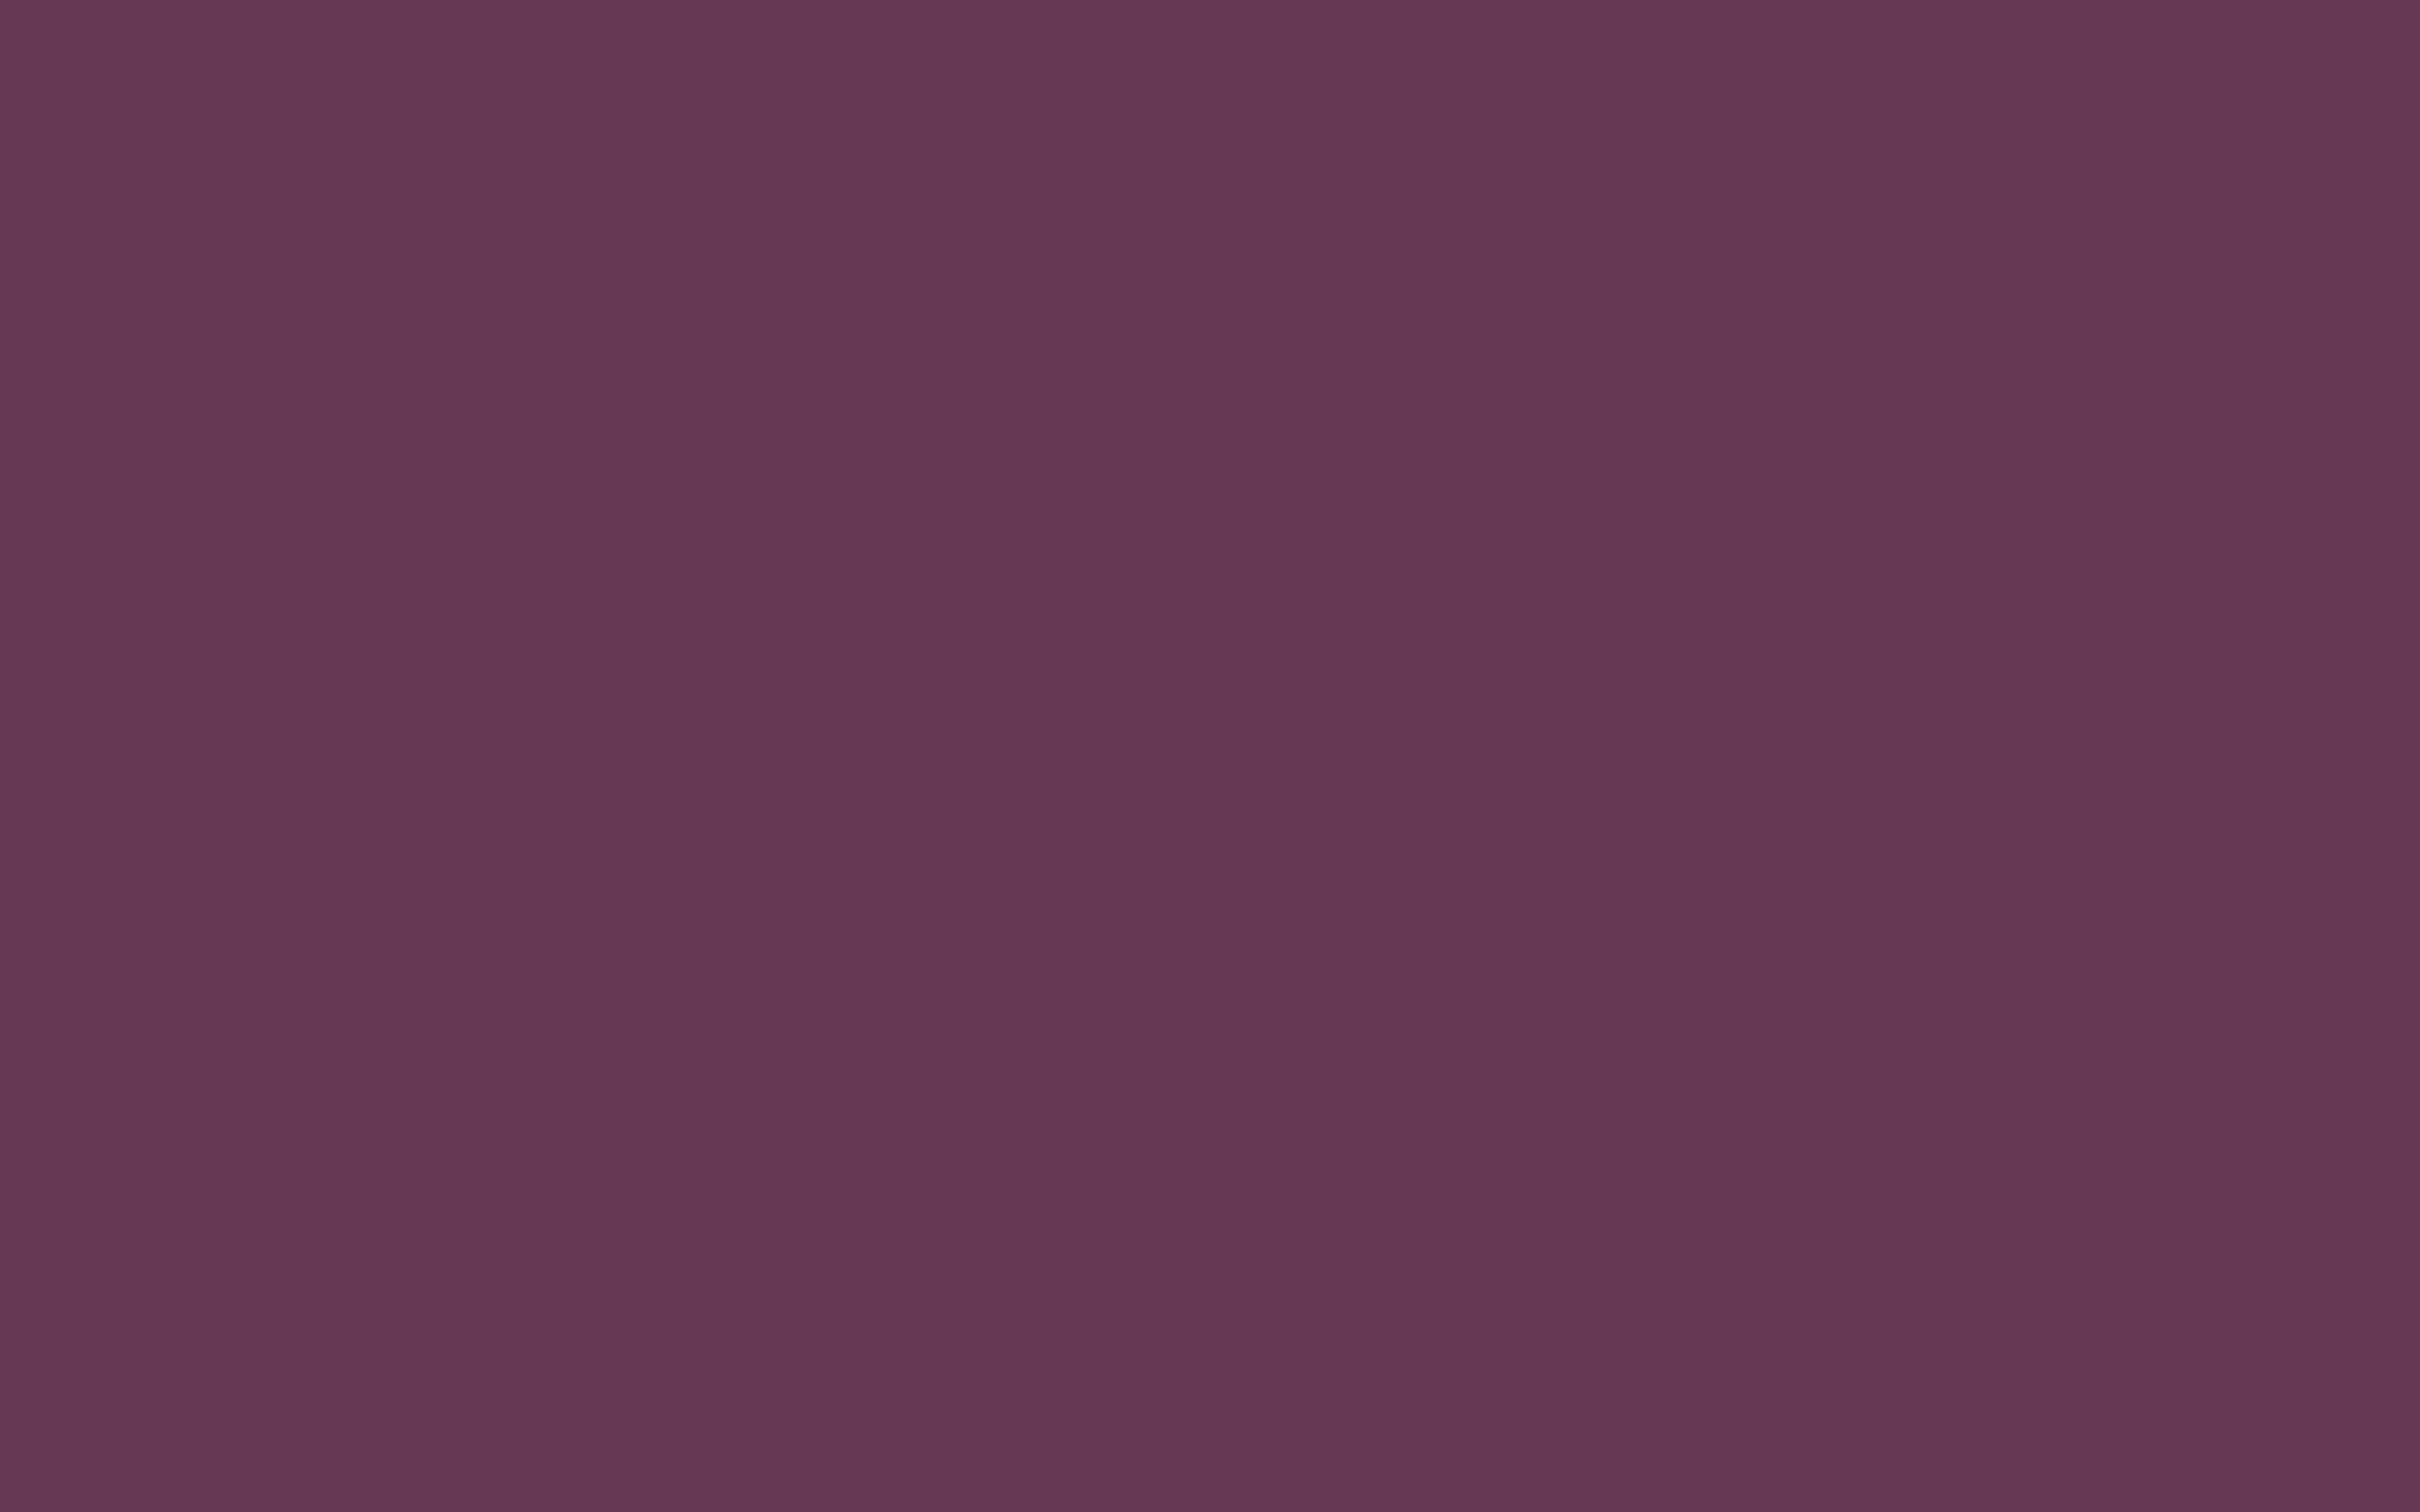 2880x1800 Halaya Ube Solid Color Background